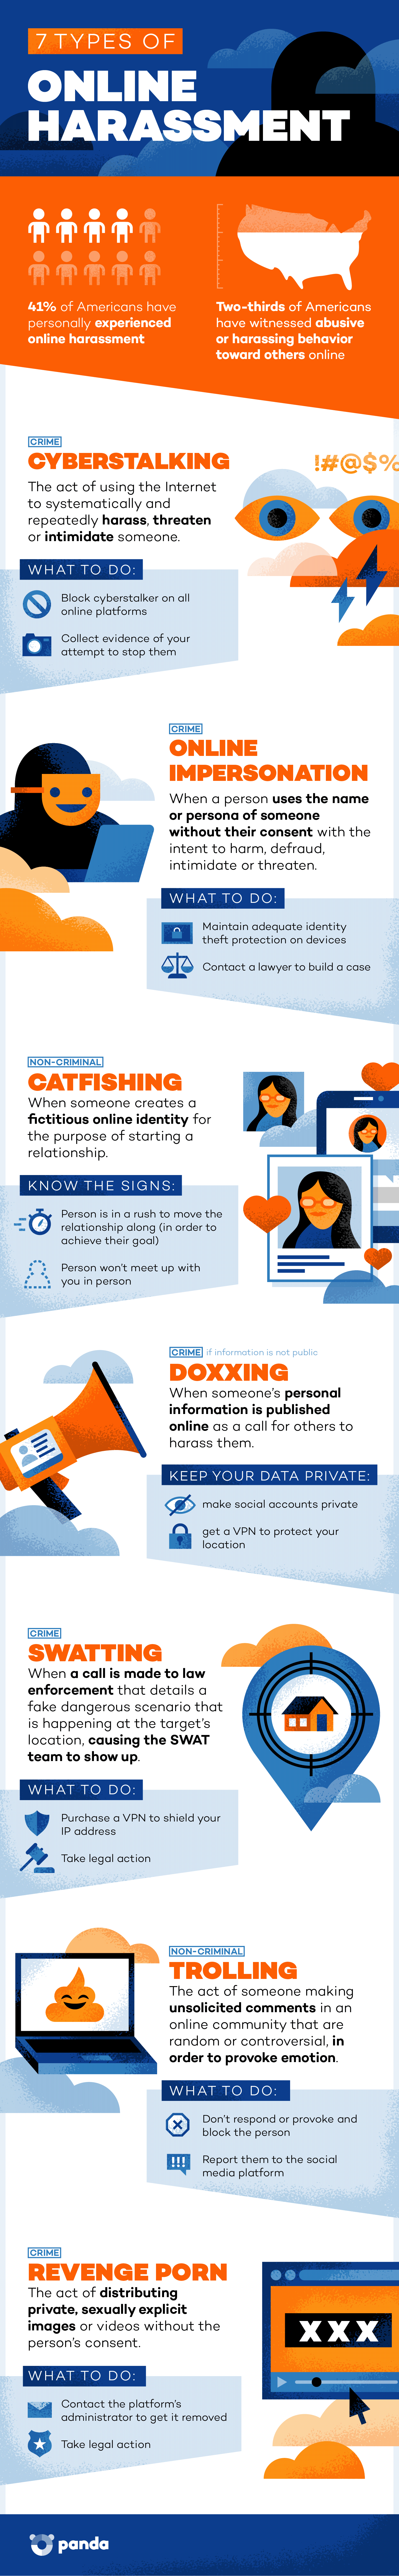 Infographic looks at different types of online harassment